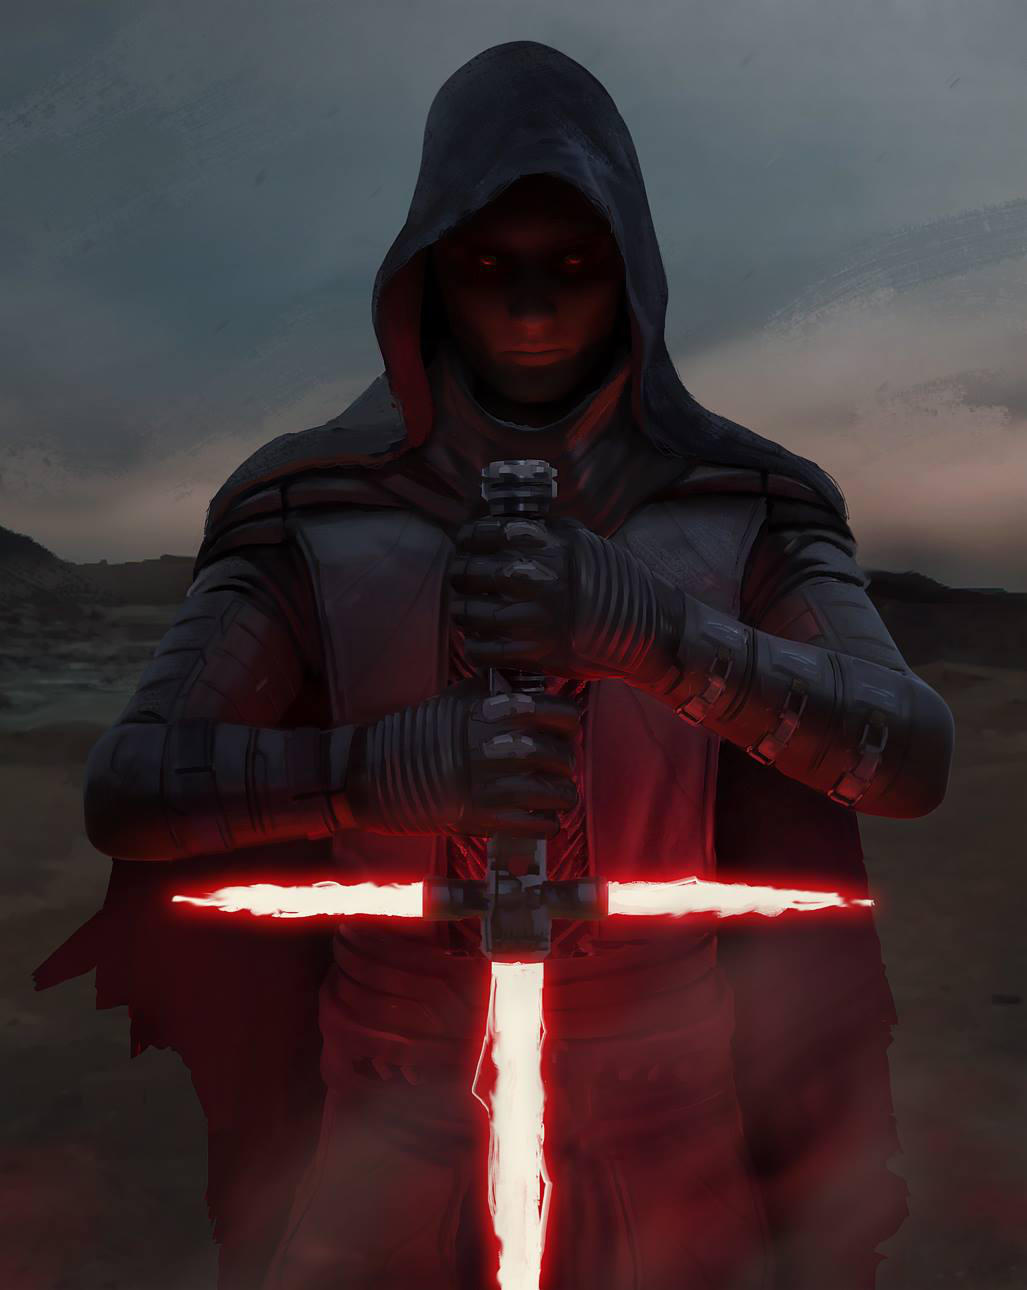 Sith lord ep7 FAN ART by jamga